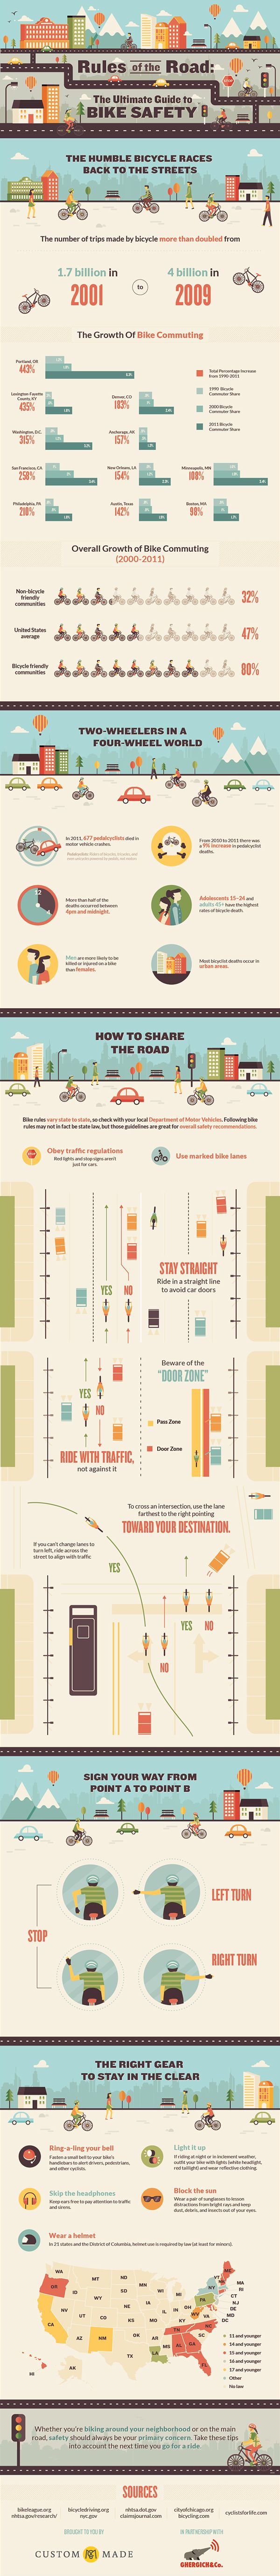 Bike Safety | Infographic by Risa Rodil, via Behance